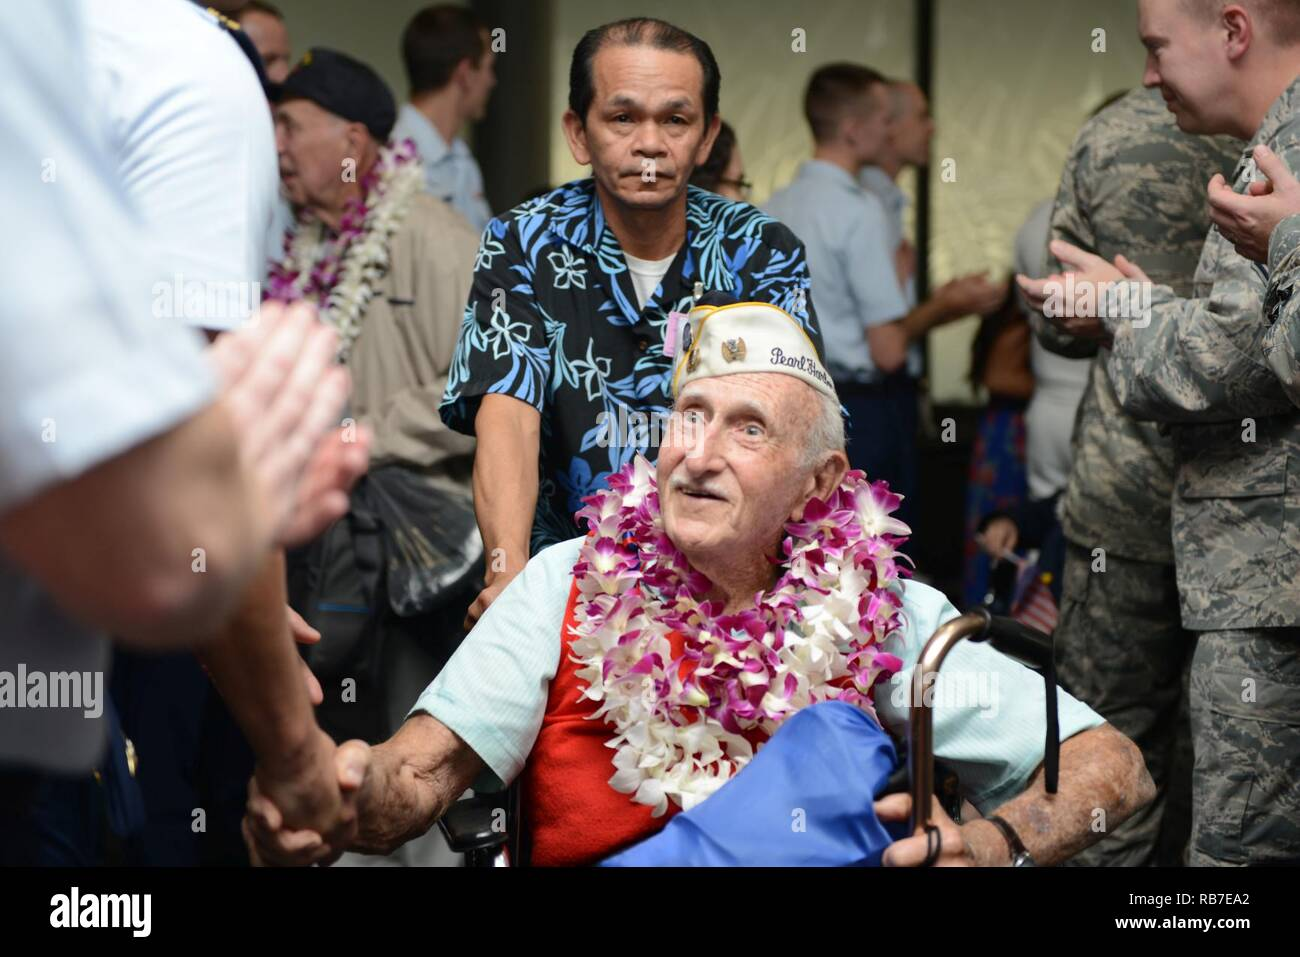 a pearl harbor survivor is greeted by several military members and